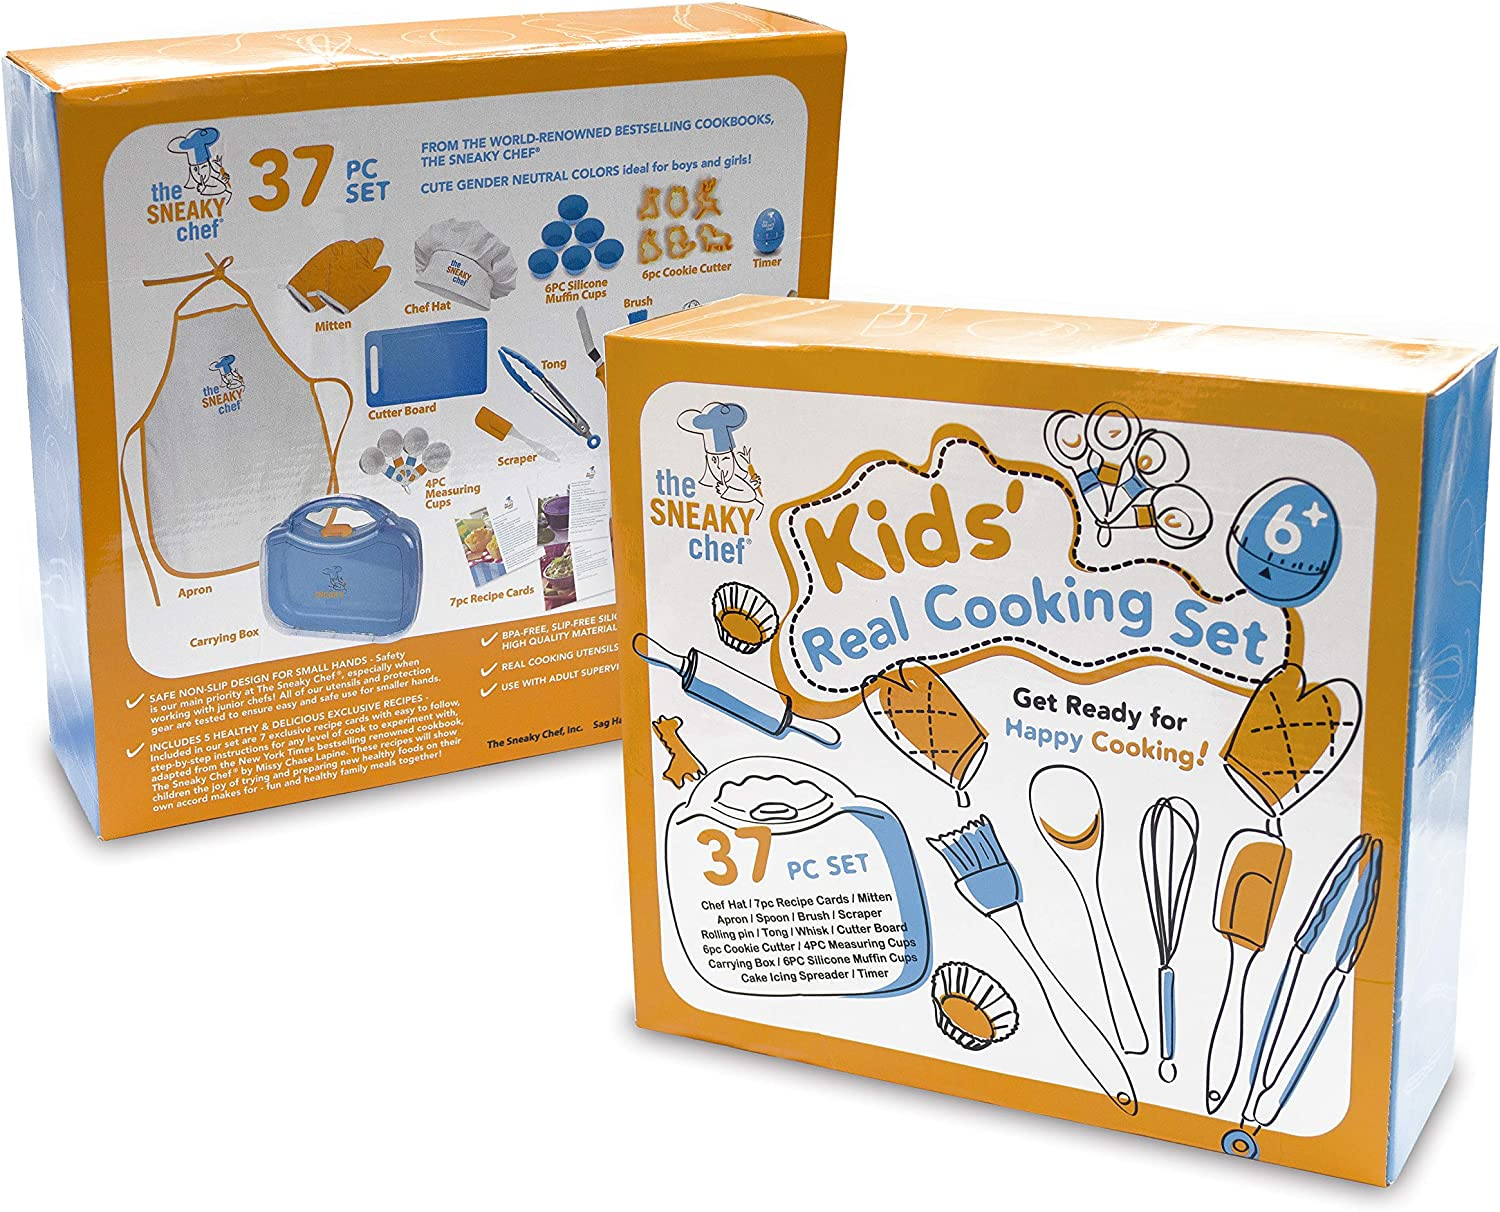 Cookie Cutters Child-Safe Essential Junior Utensils Storage Case The Sneaky Chef Kids Cooking//Baking Set 35 Piece BPA Free Ages 6+ and 7 Healthy Recipe Cards Cooking Protection